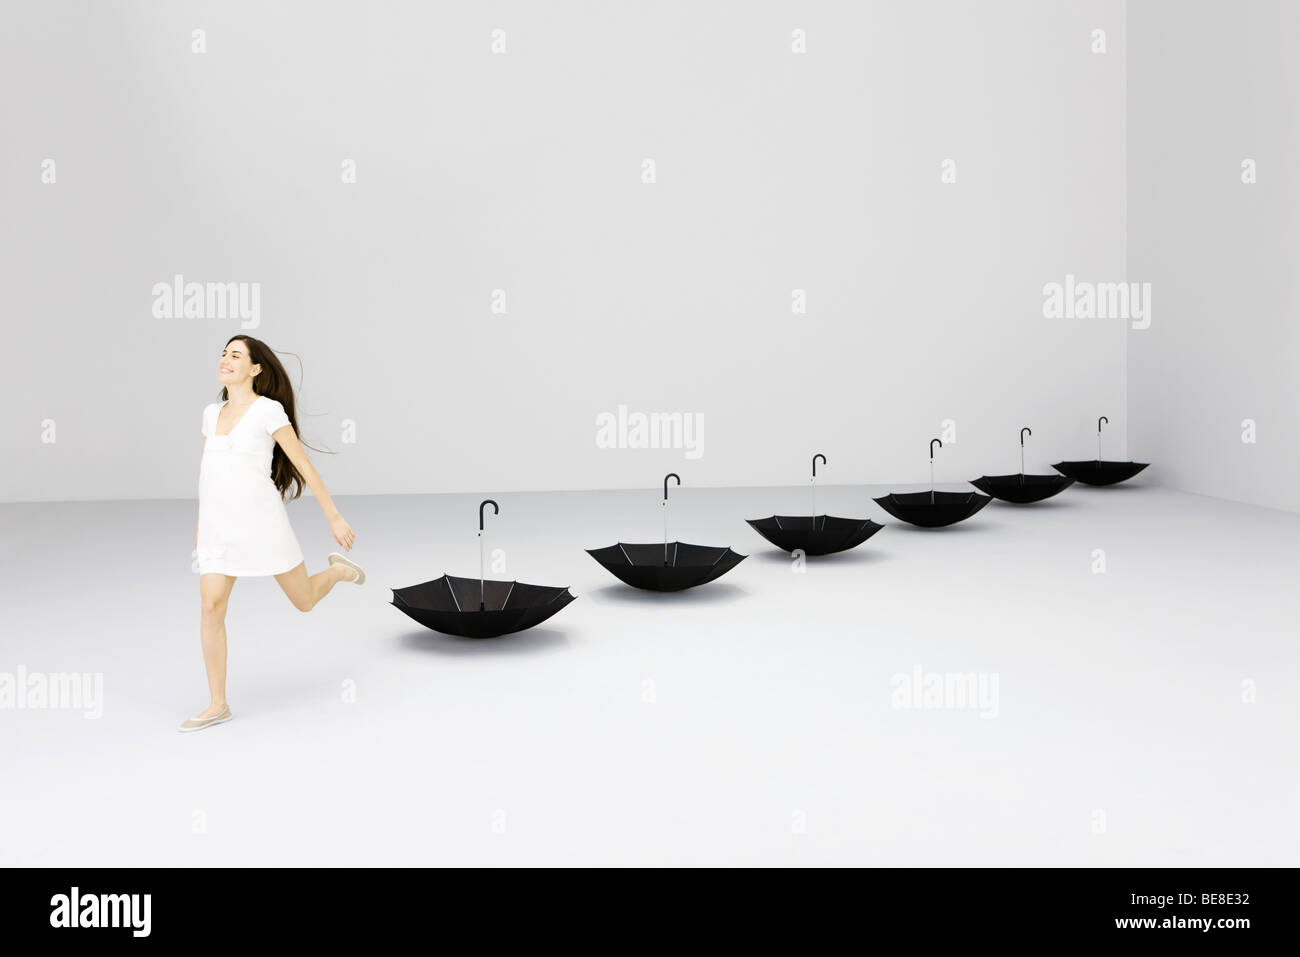 Woman running, upside down umbrellas lined up behind her Stock Photo